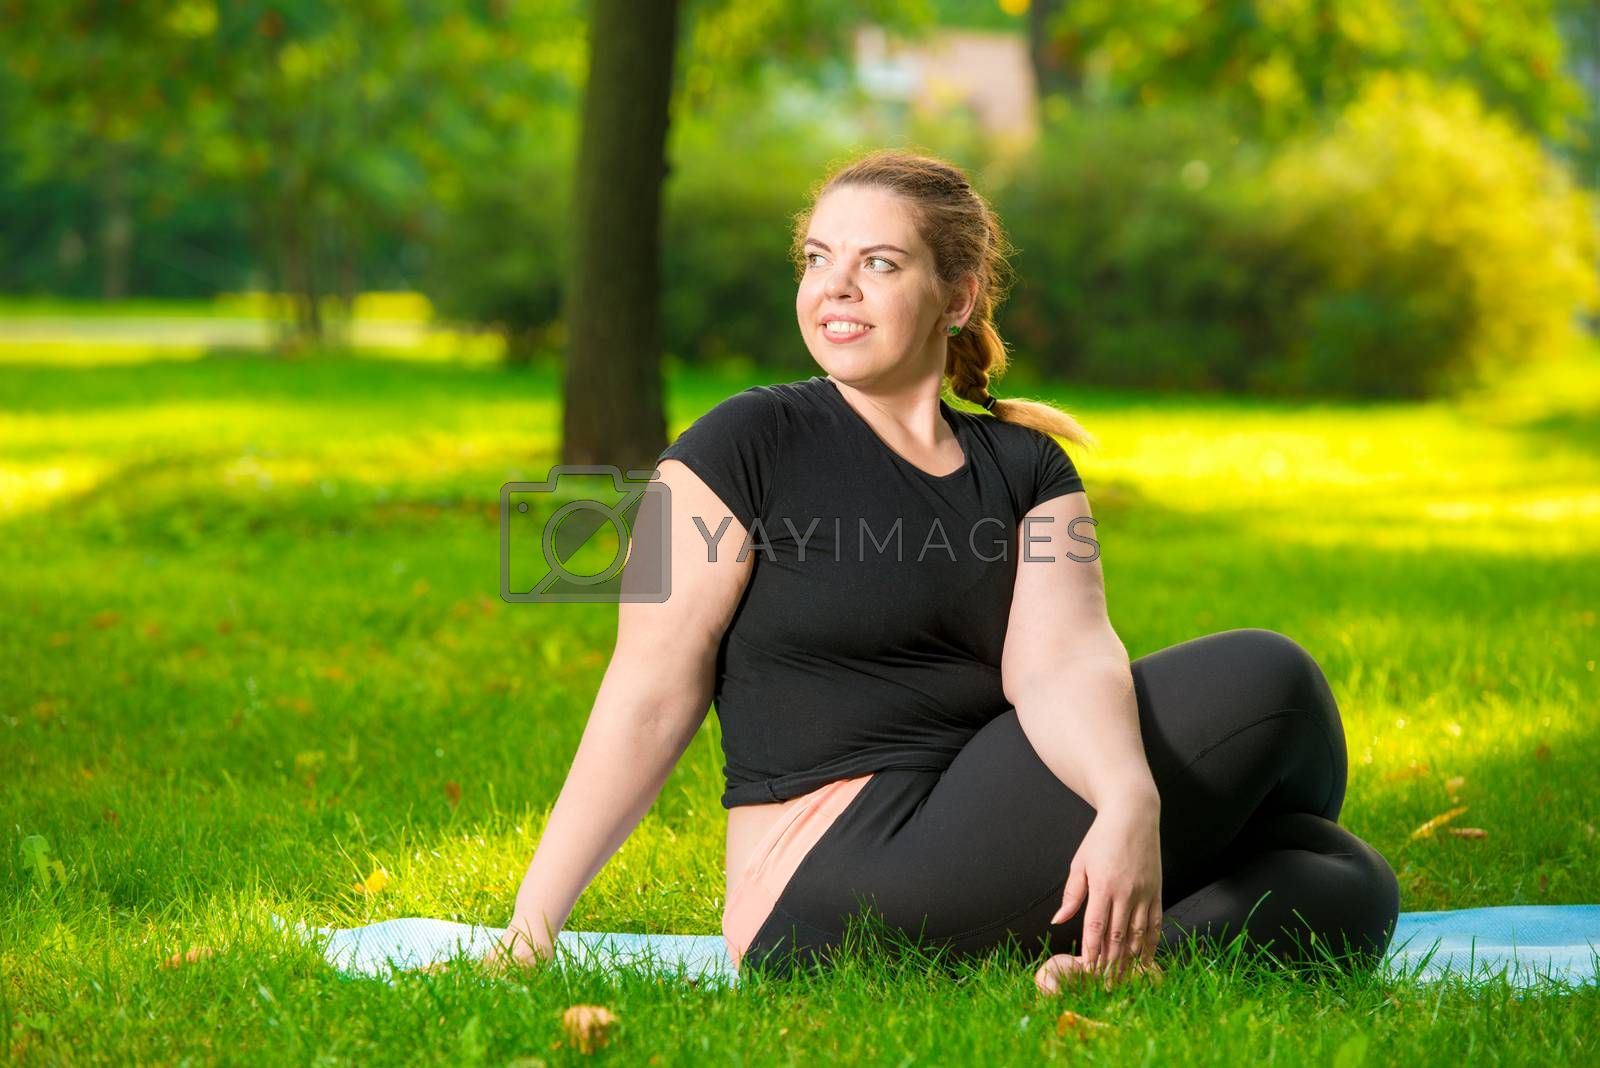 portrait of a plus size model in the park during a yoga class, s by Labunskiy K.